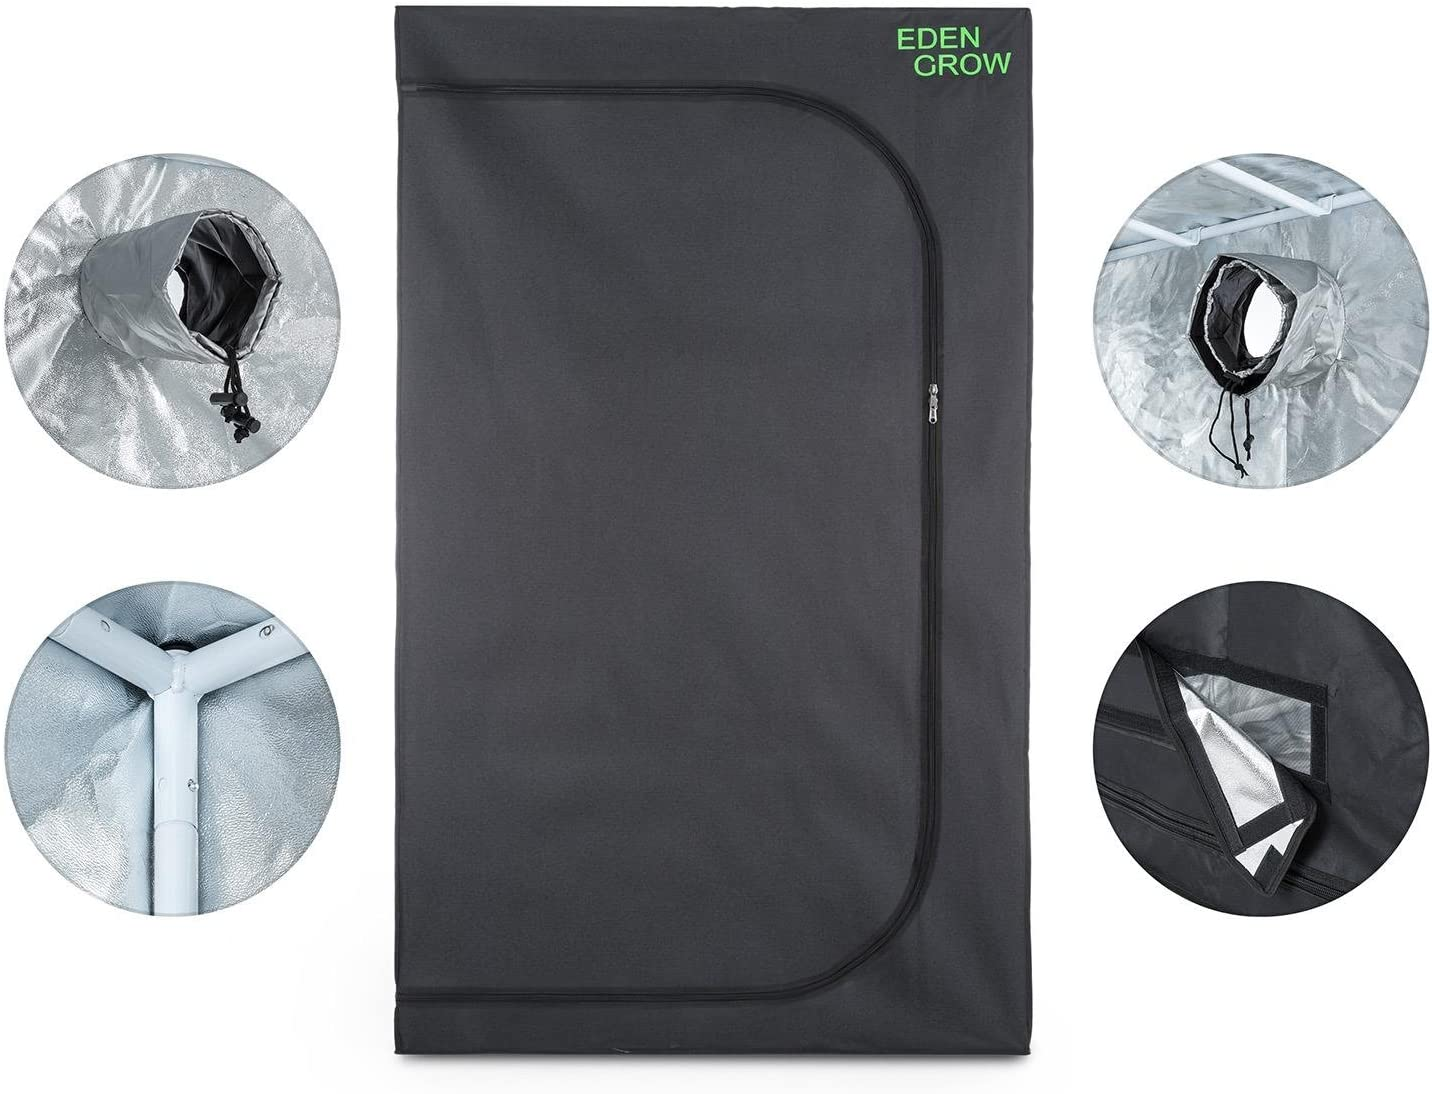 OneConcept Eden Grow S Grow Box Growtent Homegrowing for Indoor Cultivation of Plants 80x80x160cm, Opaque Sheath, Highly Reflective Interior Coating